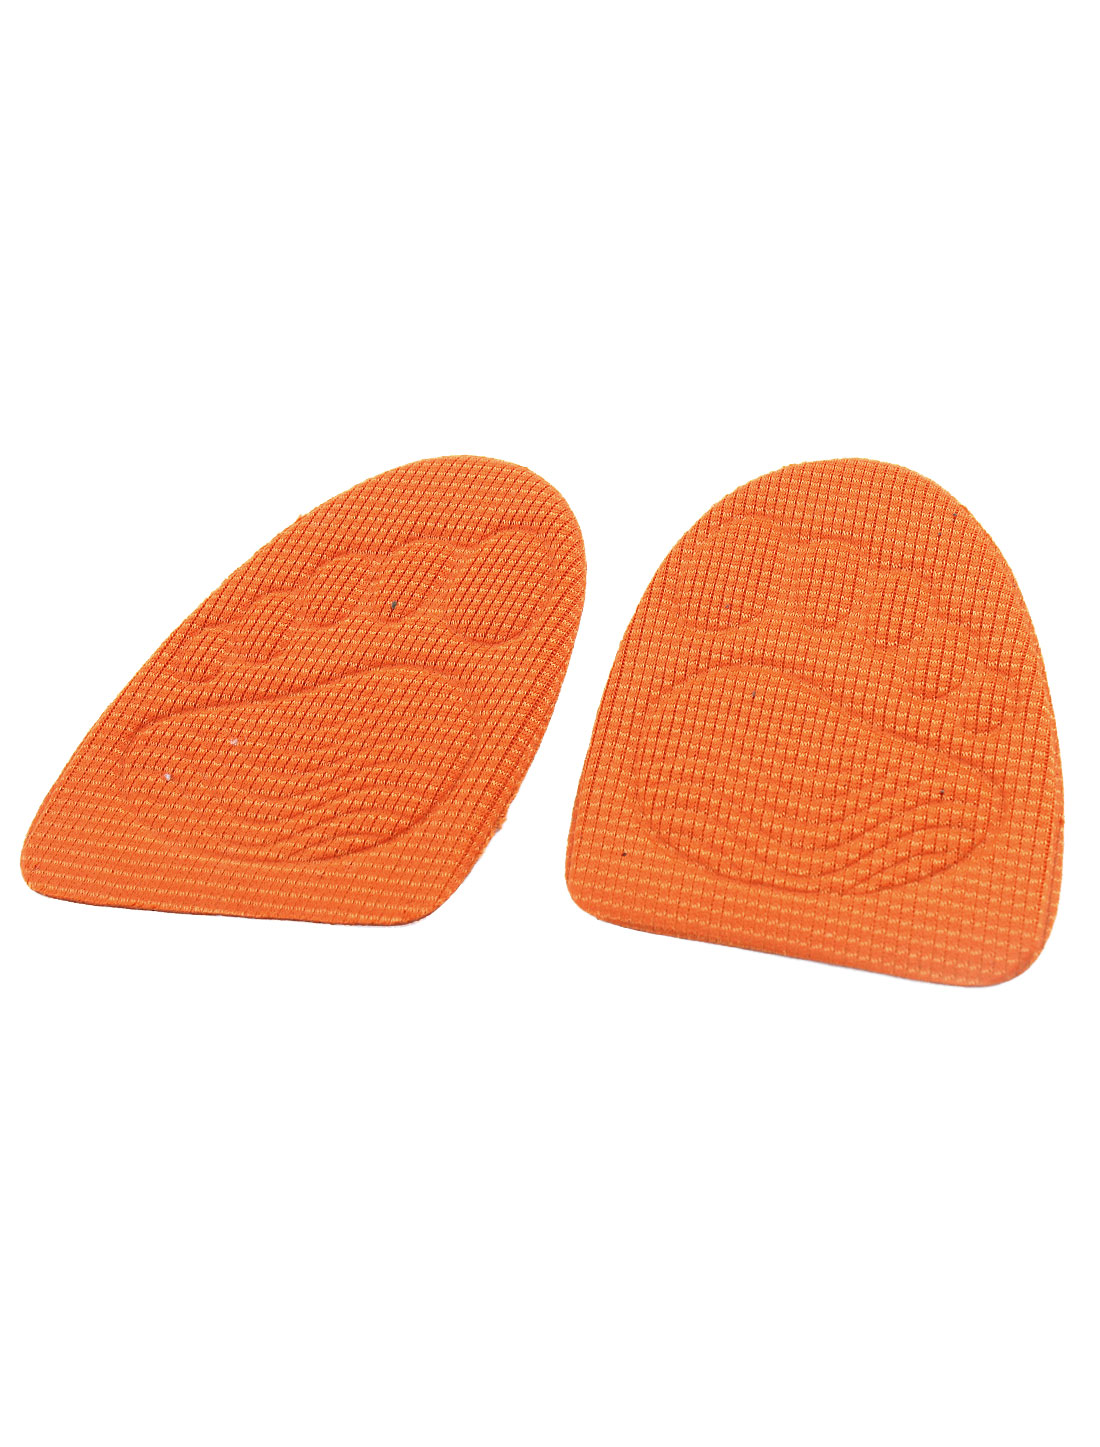 High-heeled Shoes Foresole Heel Lifts Height Inserts Insole Pair Orange